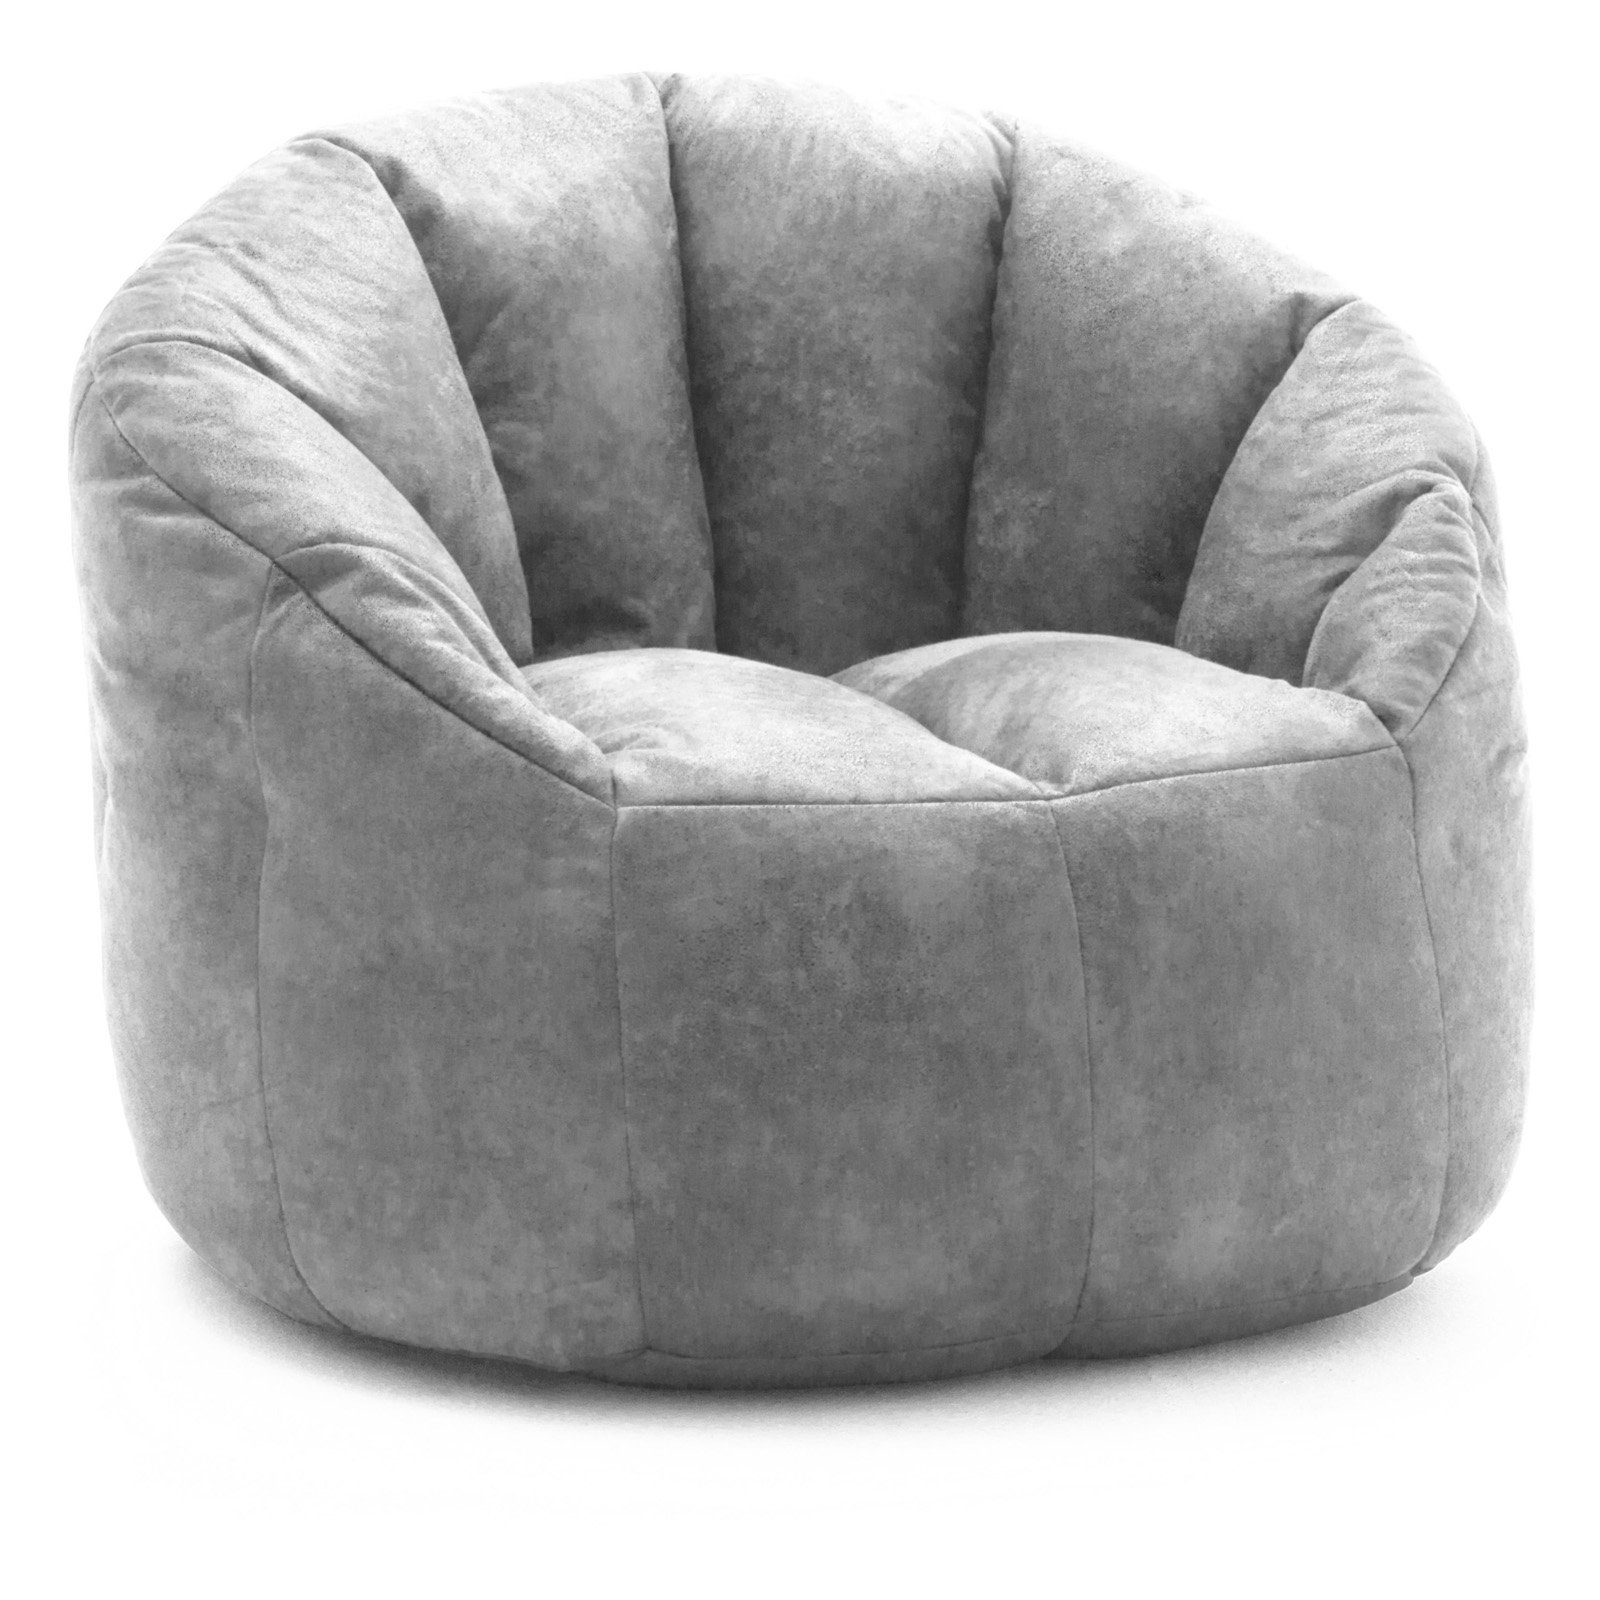 Lux By Big Joe Large Milano Blazer Leather Bean Bag